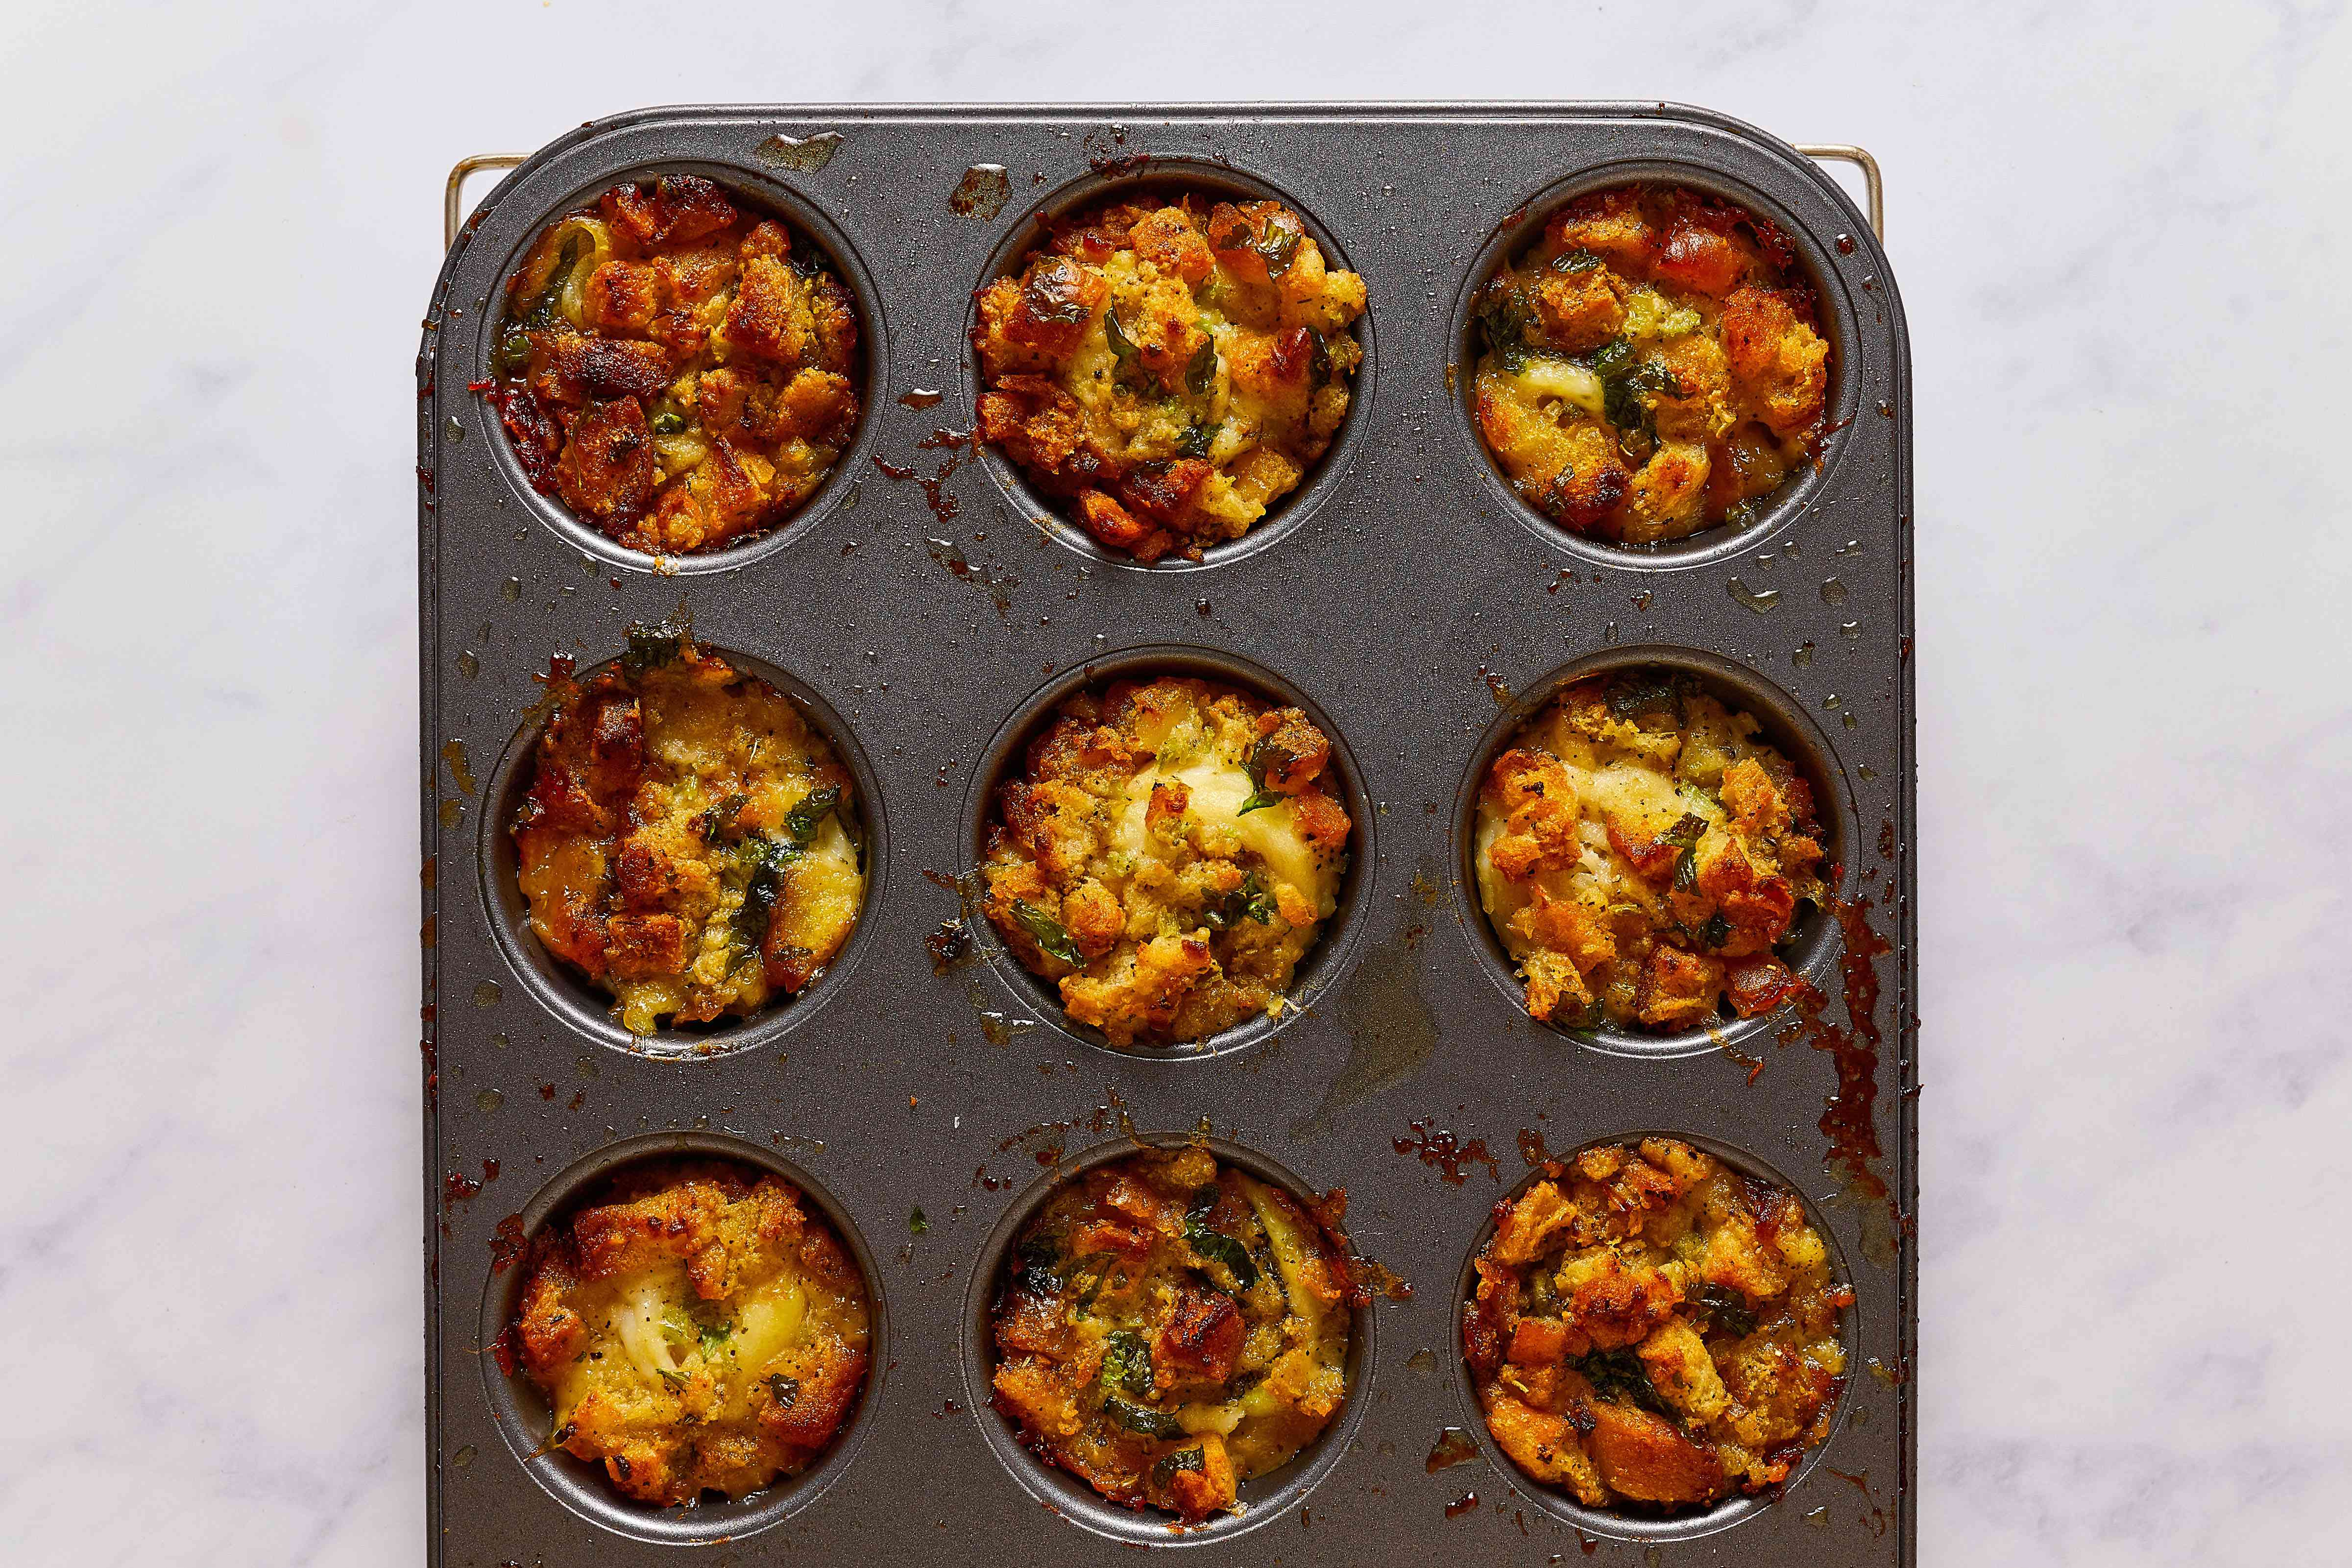 Baked Stuffed Fish Fillet in muffin tins